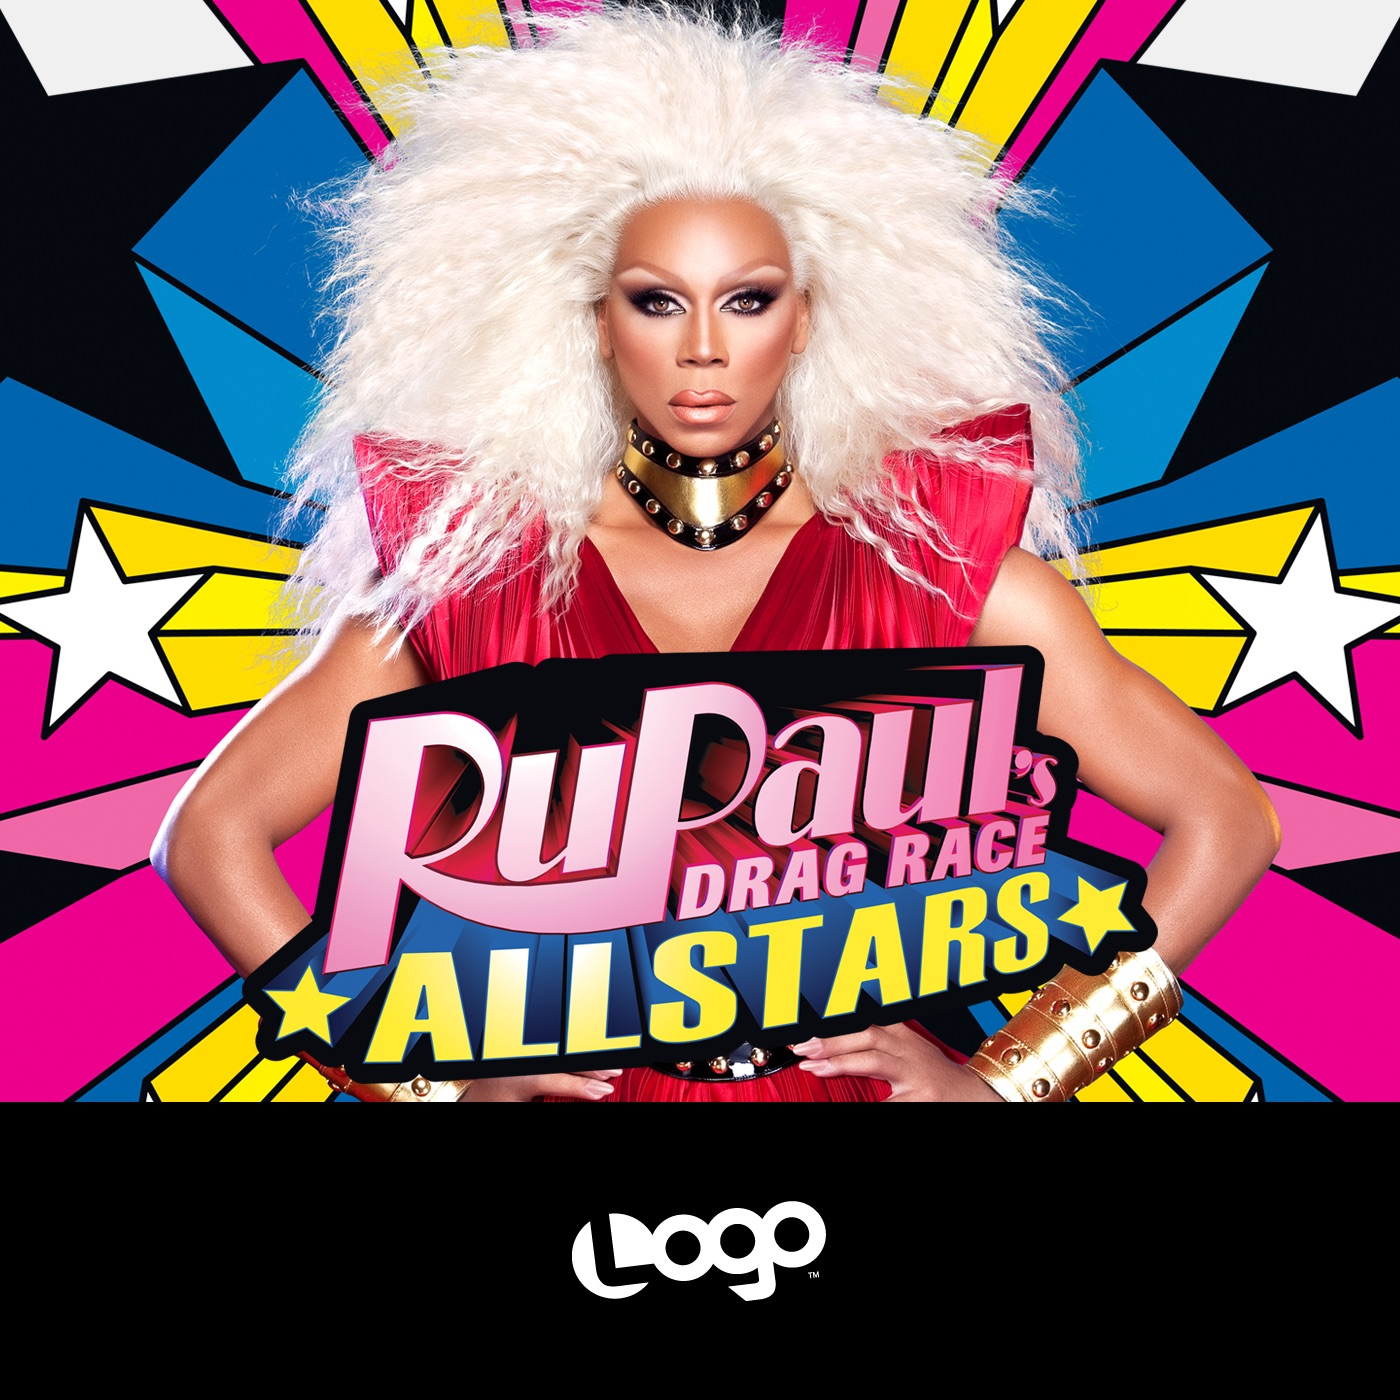 RuPaul's Drag Race All Stars (Season 1)